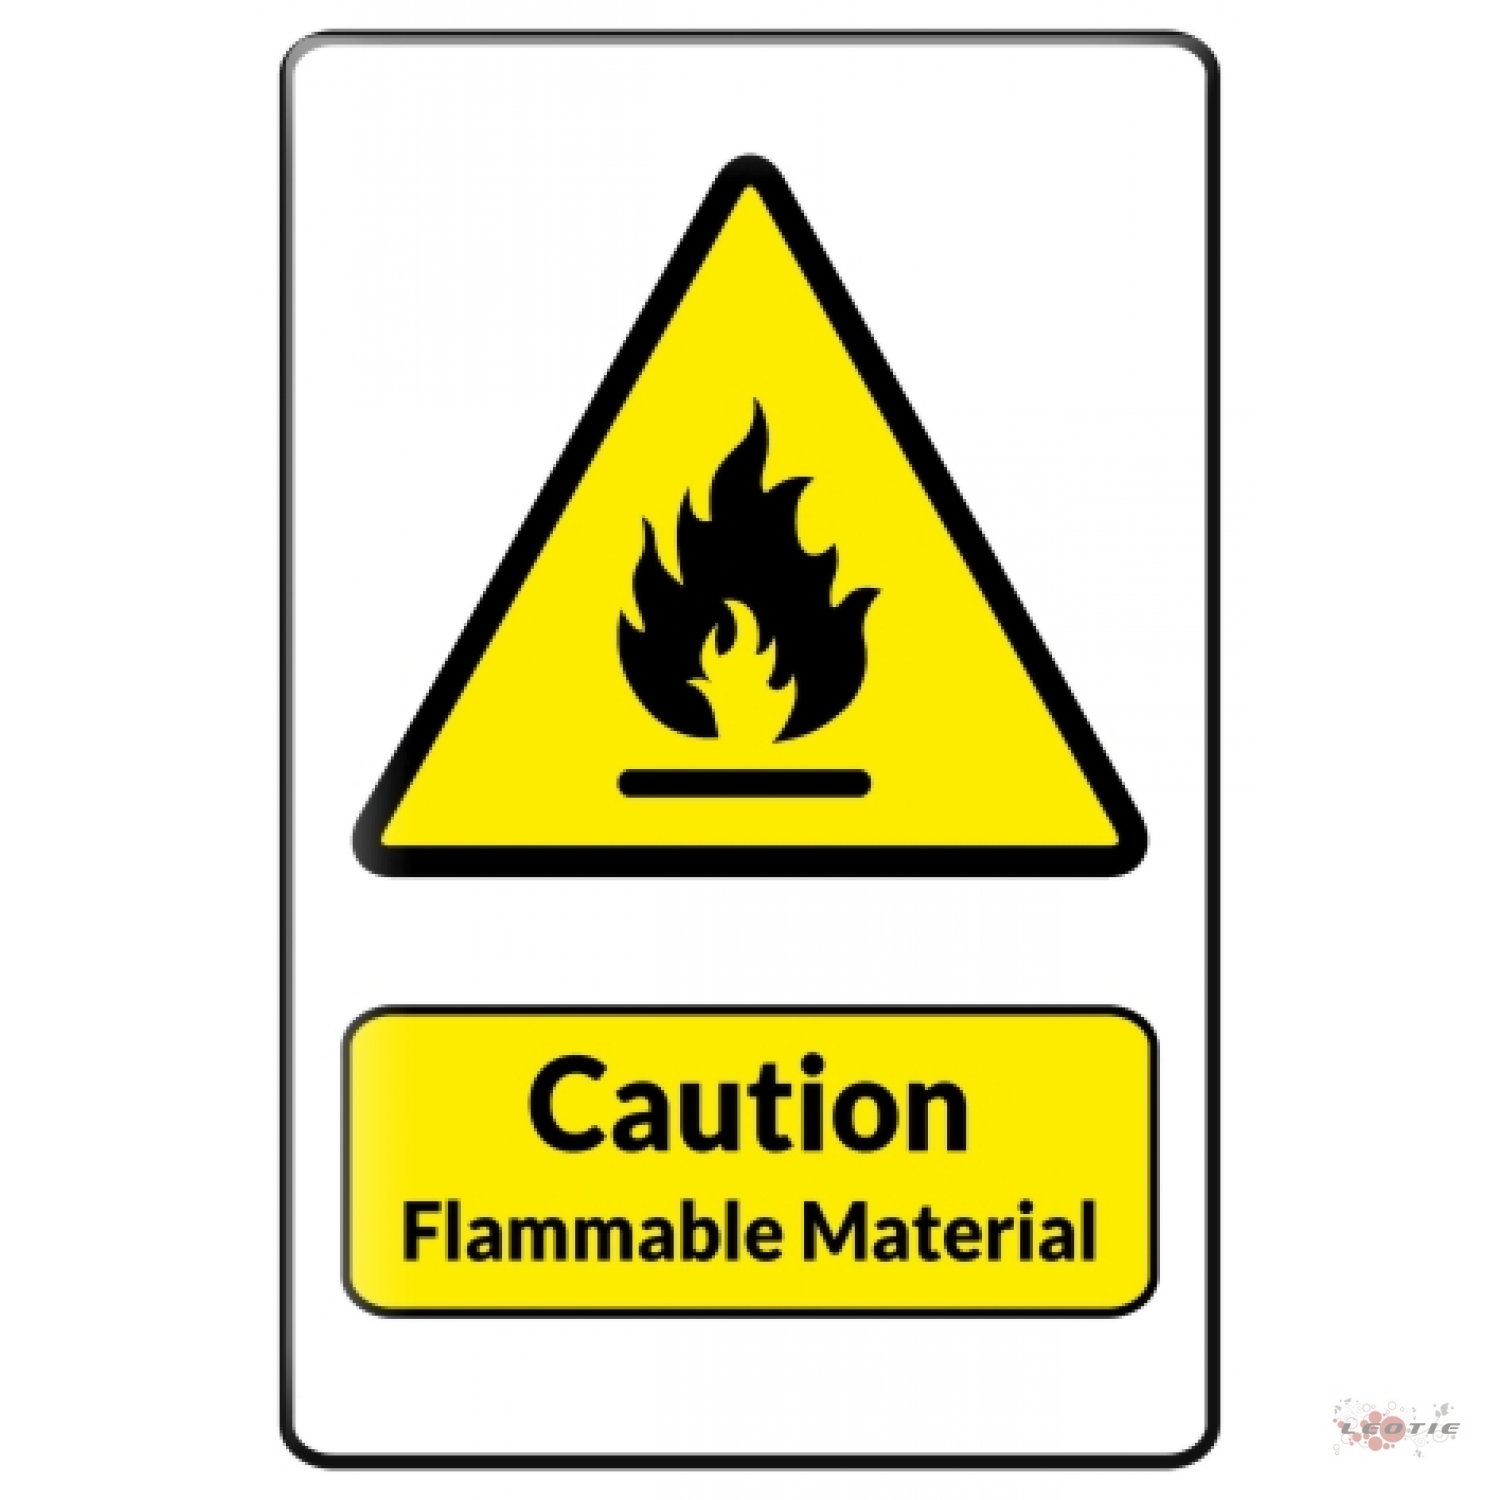 Warning flammable symbol image collections symbol and sign ideas flammables clipart clipground warning flammables signs buycottarizona buycottarizona